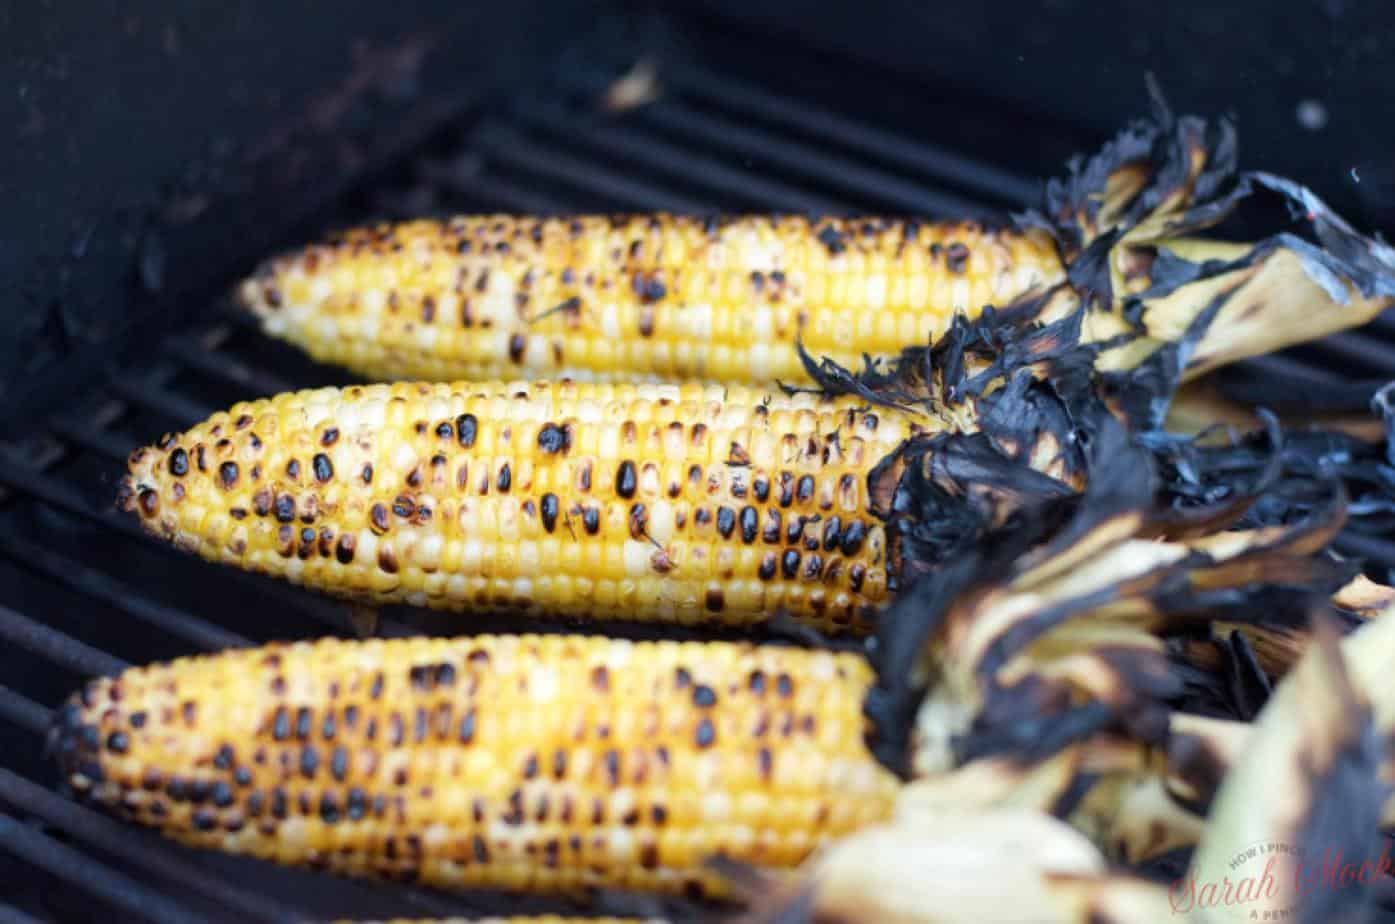 chared corn on the cob on the grill